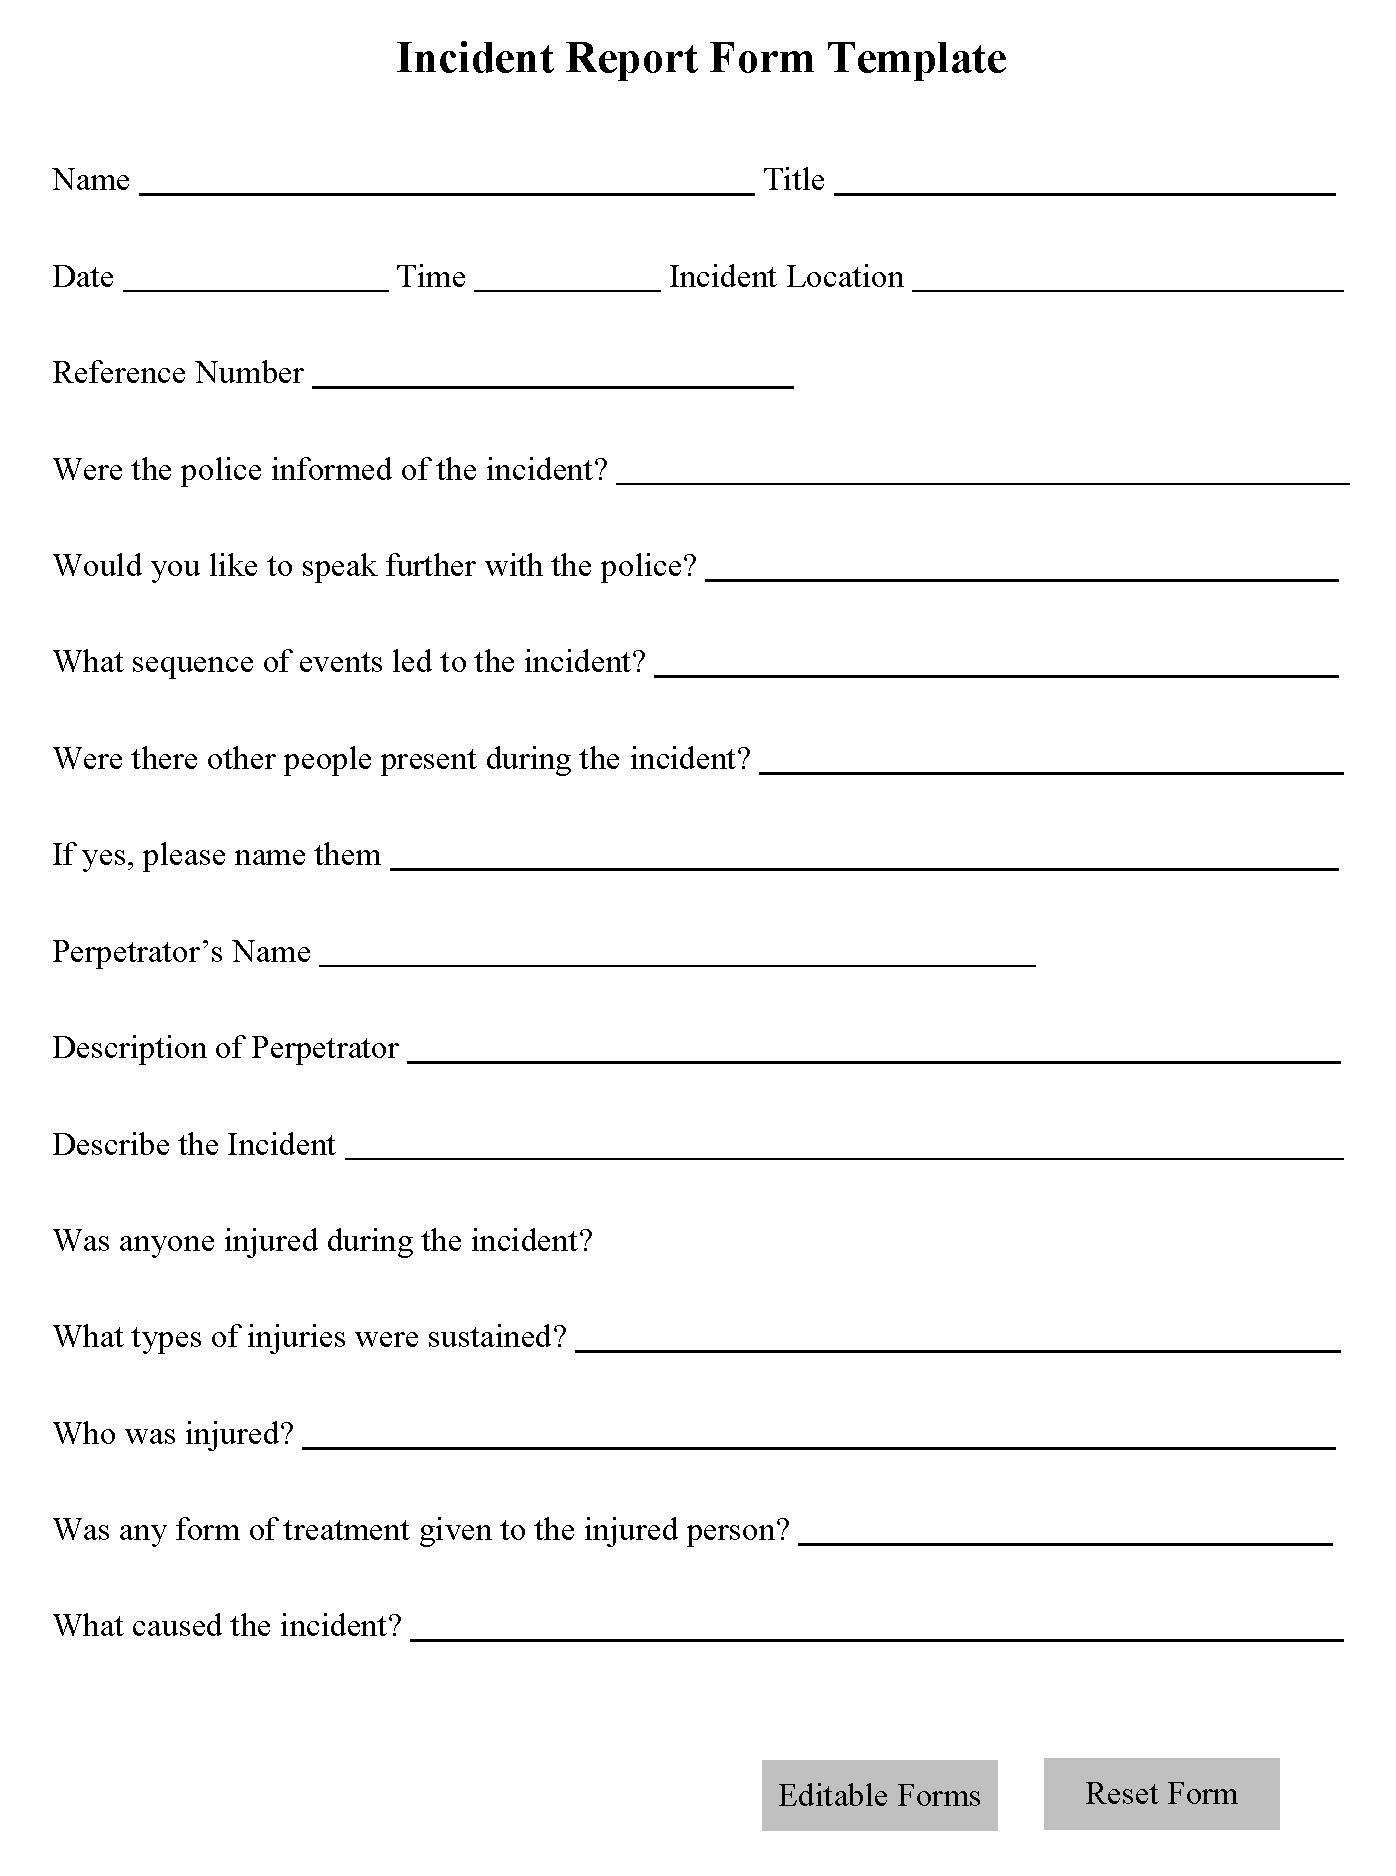 Incident Report Form Template  Editable Forms Intended For Incident Report Form Template Word